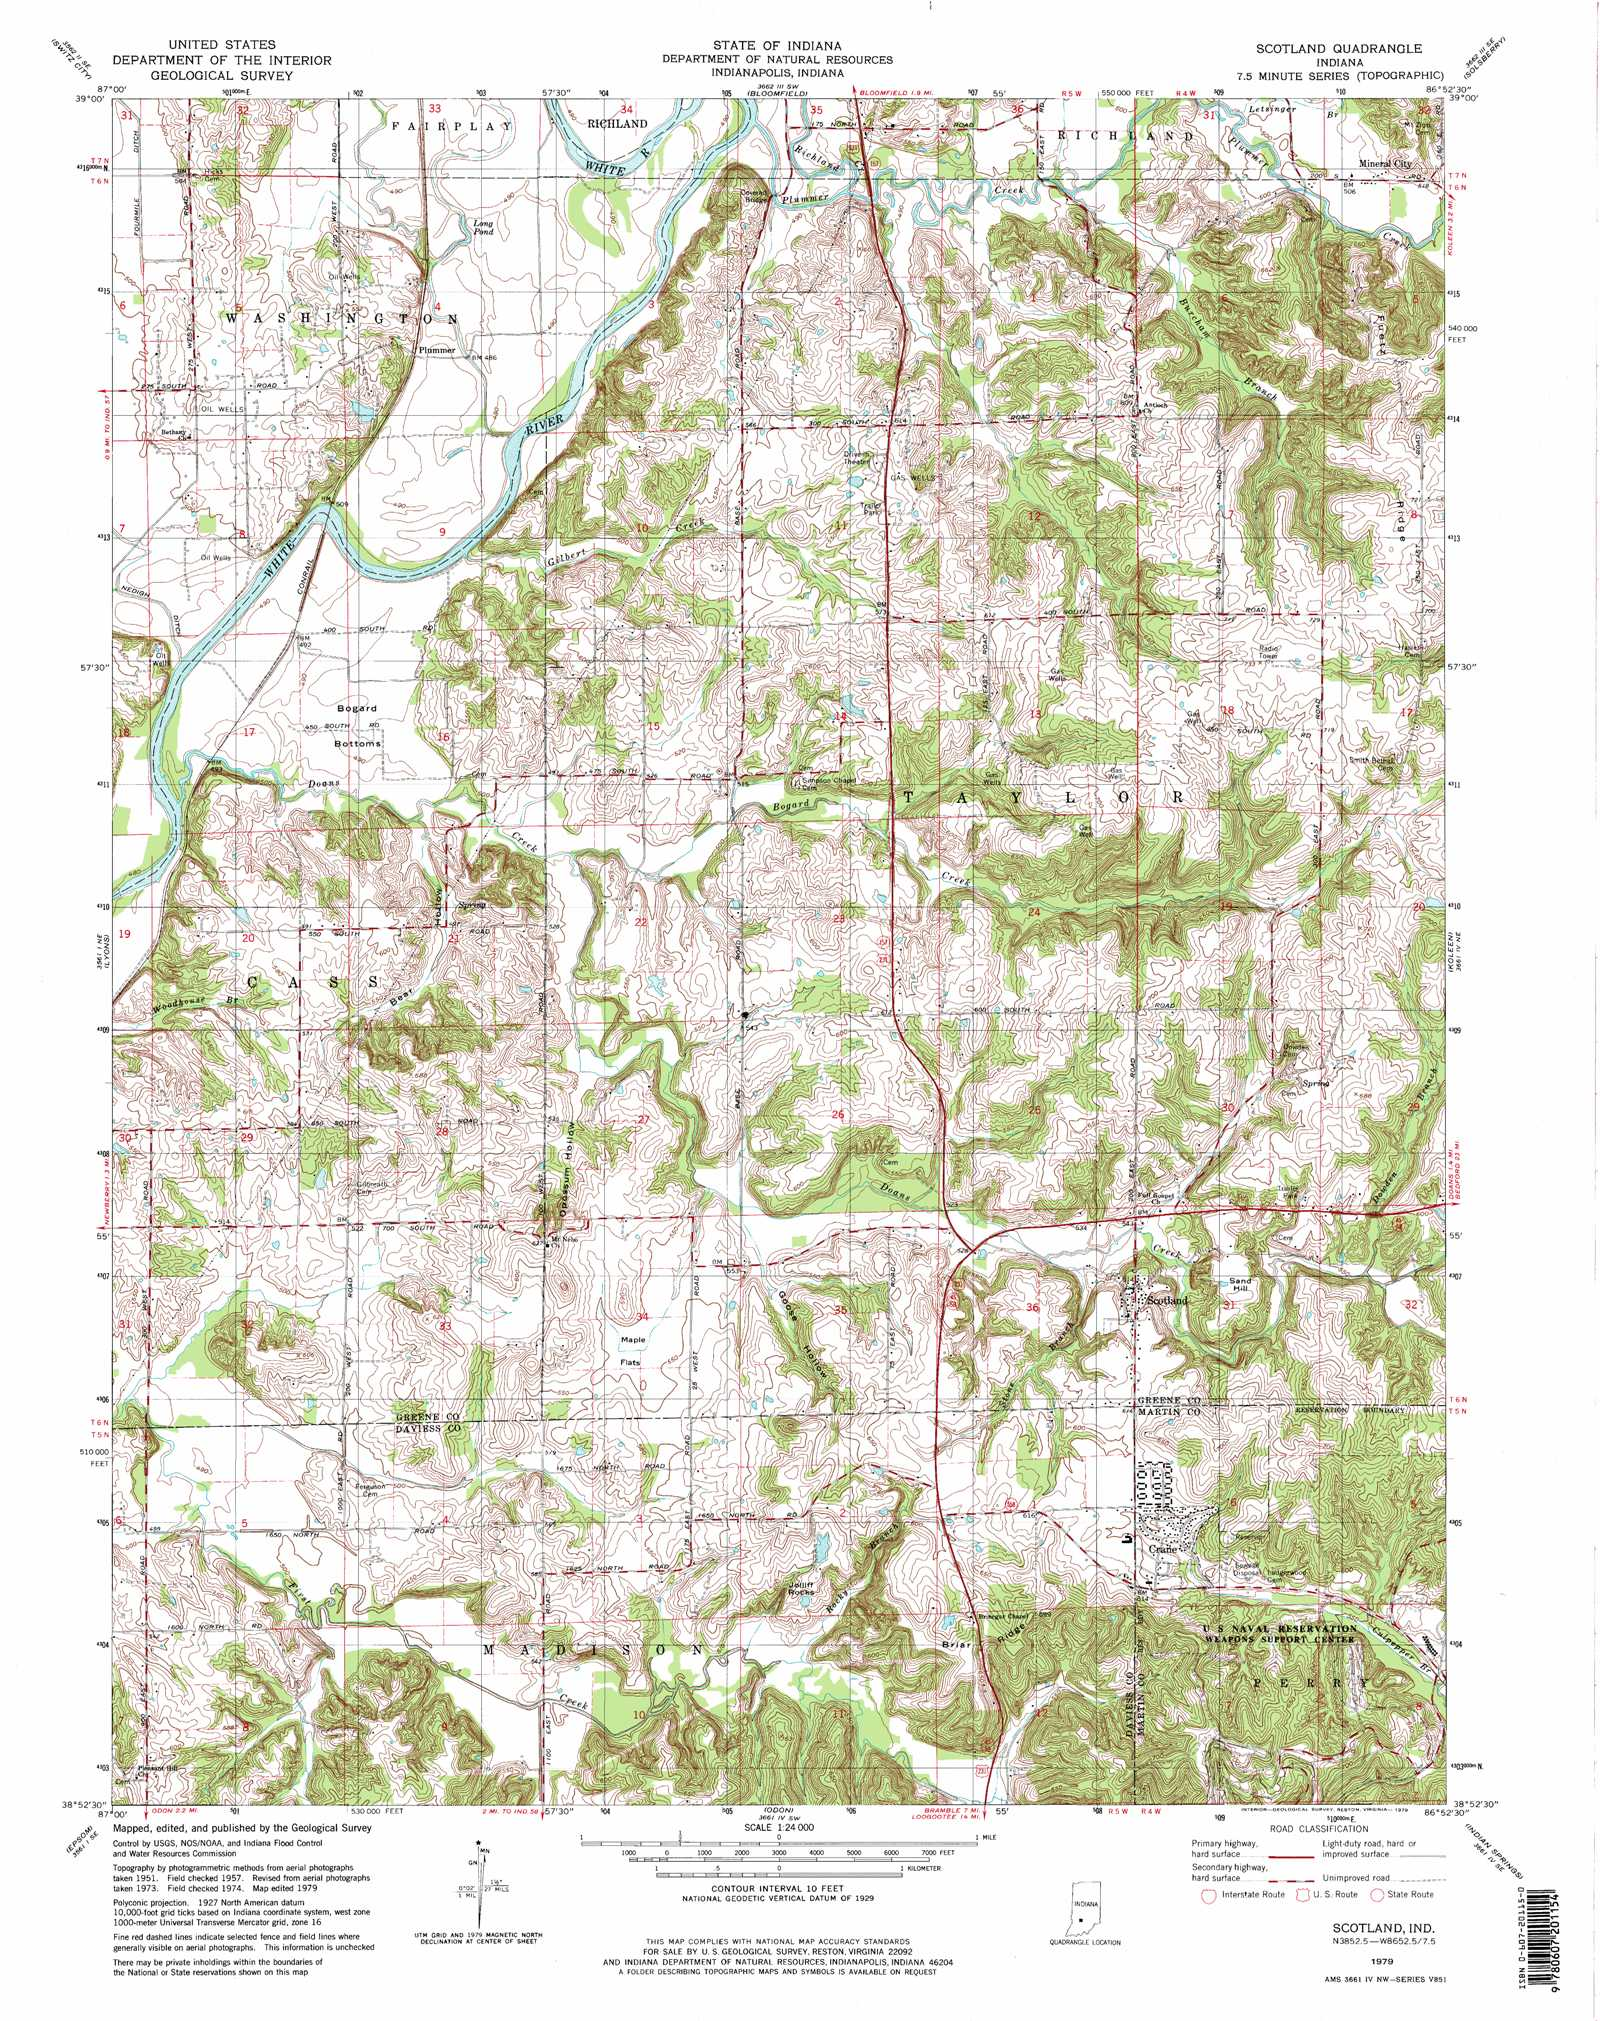 Scotland Topographic Map IN USGS Topo Quad H - Usgs topographic maps online